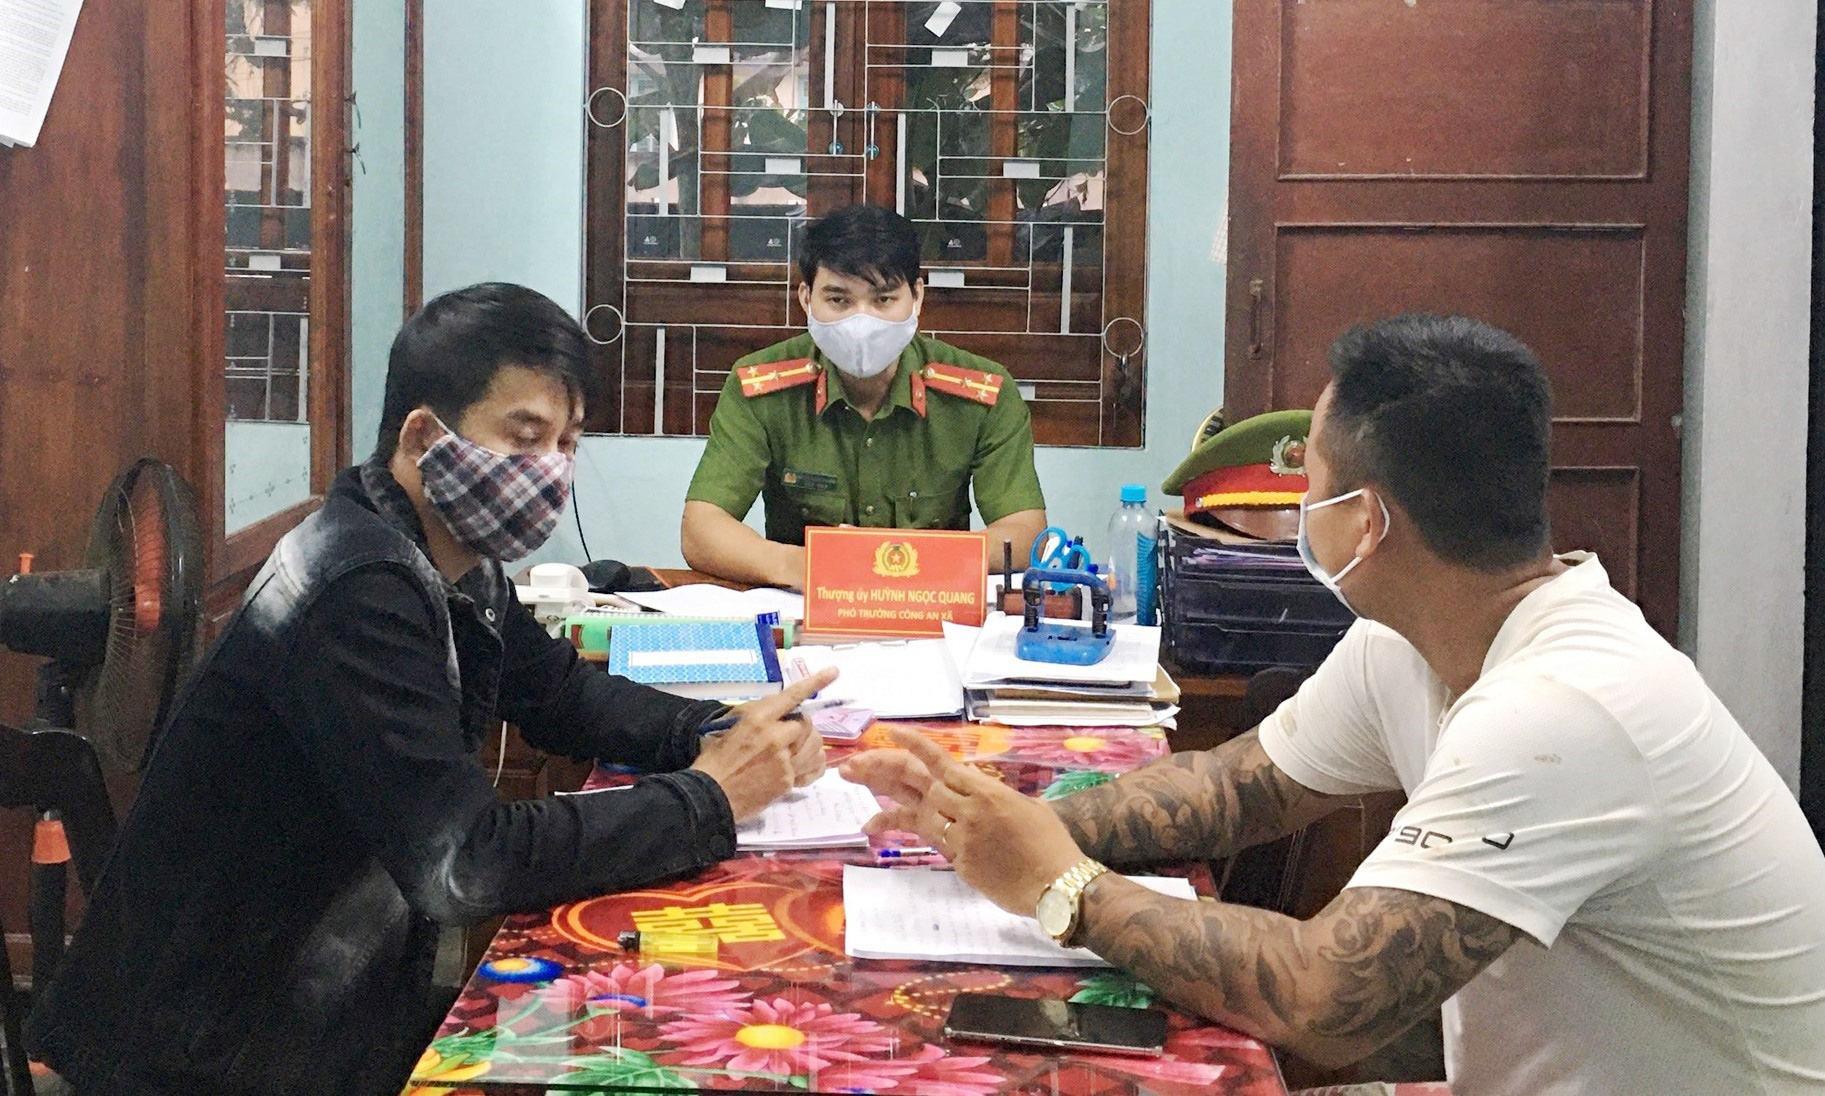 Vietnamese man fined for going fishing during home quarantine